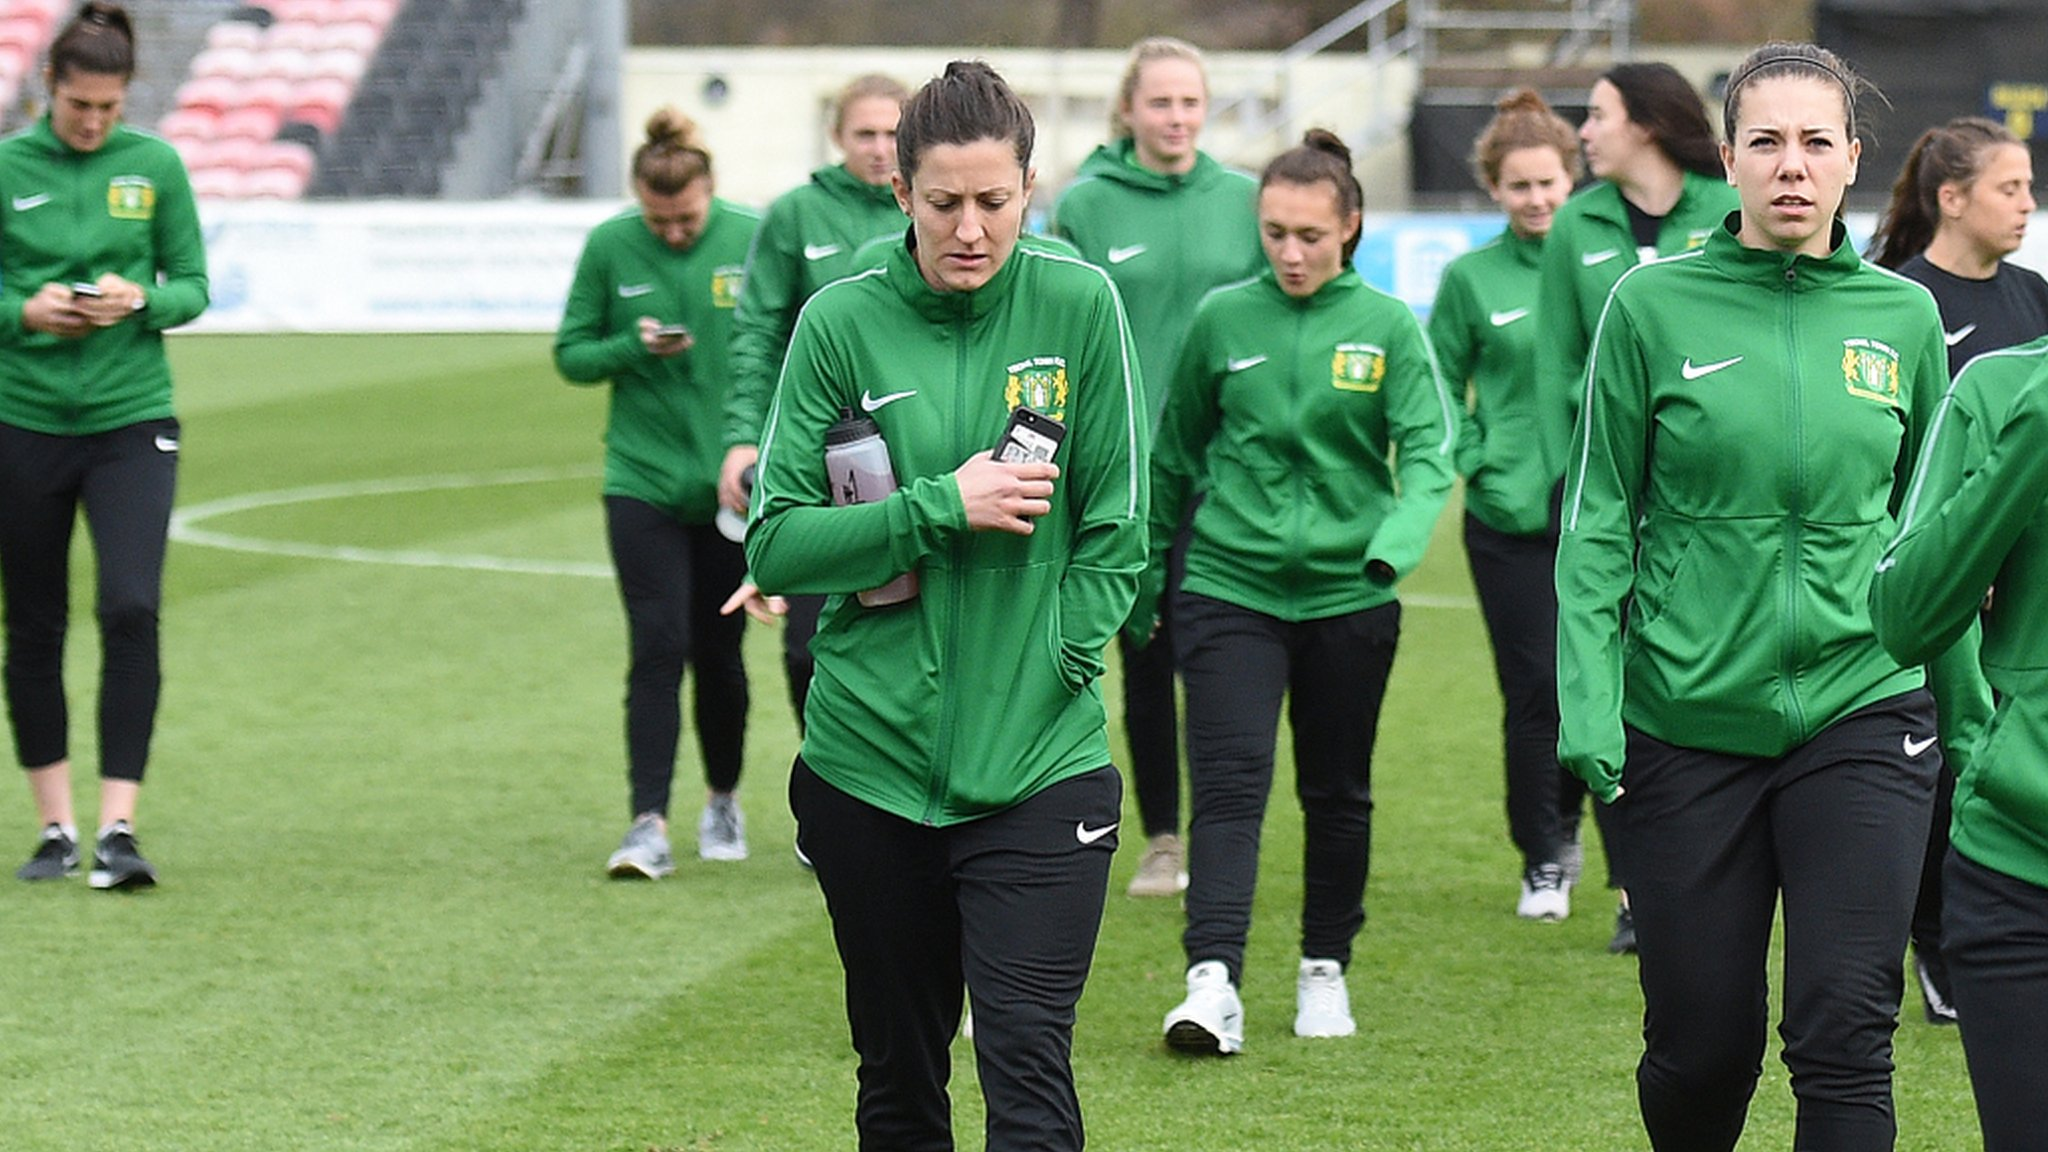 Yeovil Town Ladies: Championship licence denied and club to go down two tiers